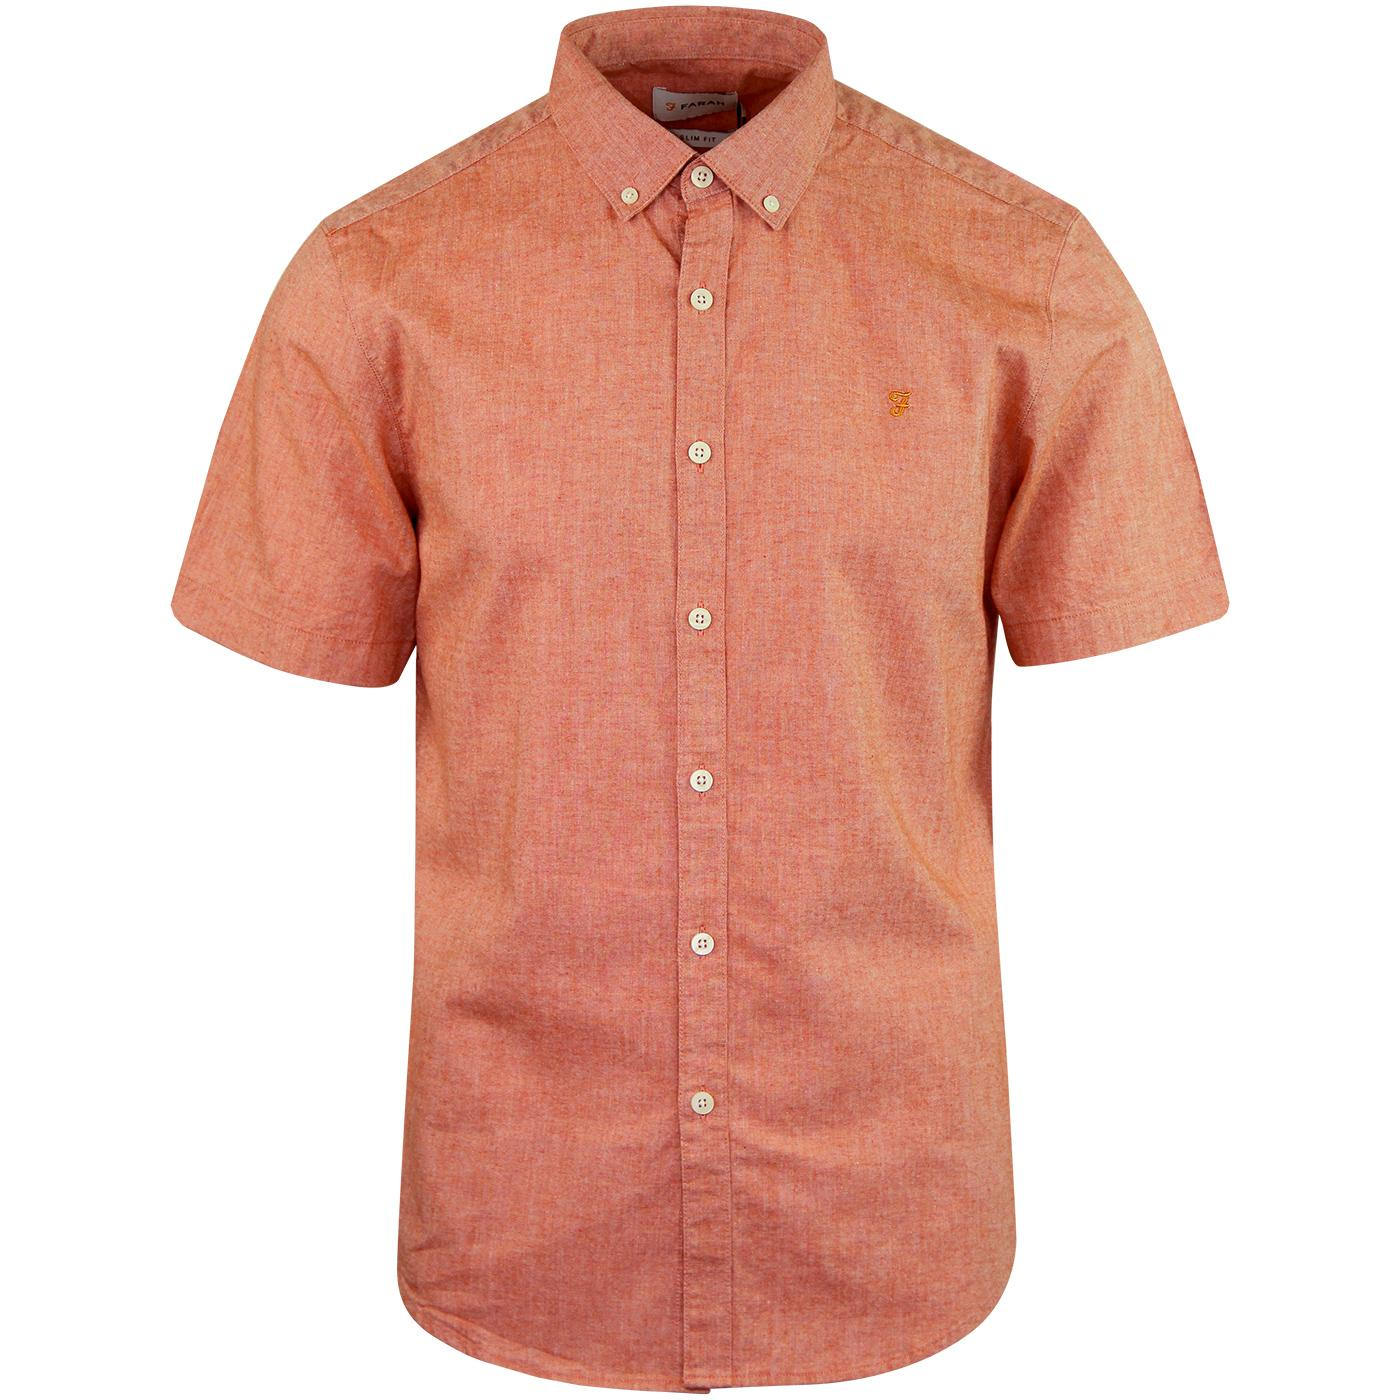 Steen FARAH 60s Mod Short Sleeve Oxford Shirt (G)